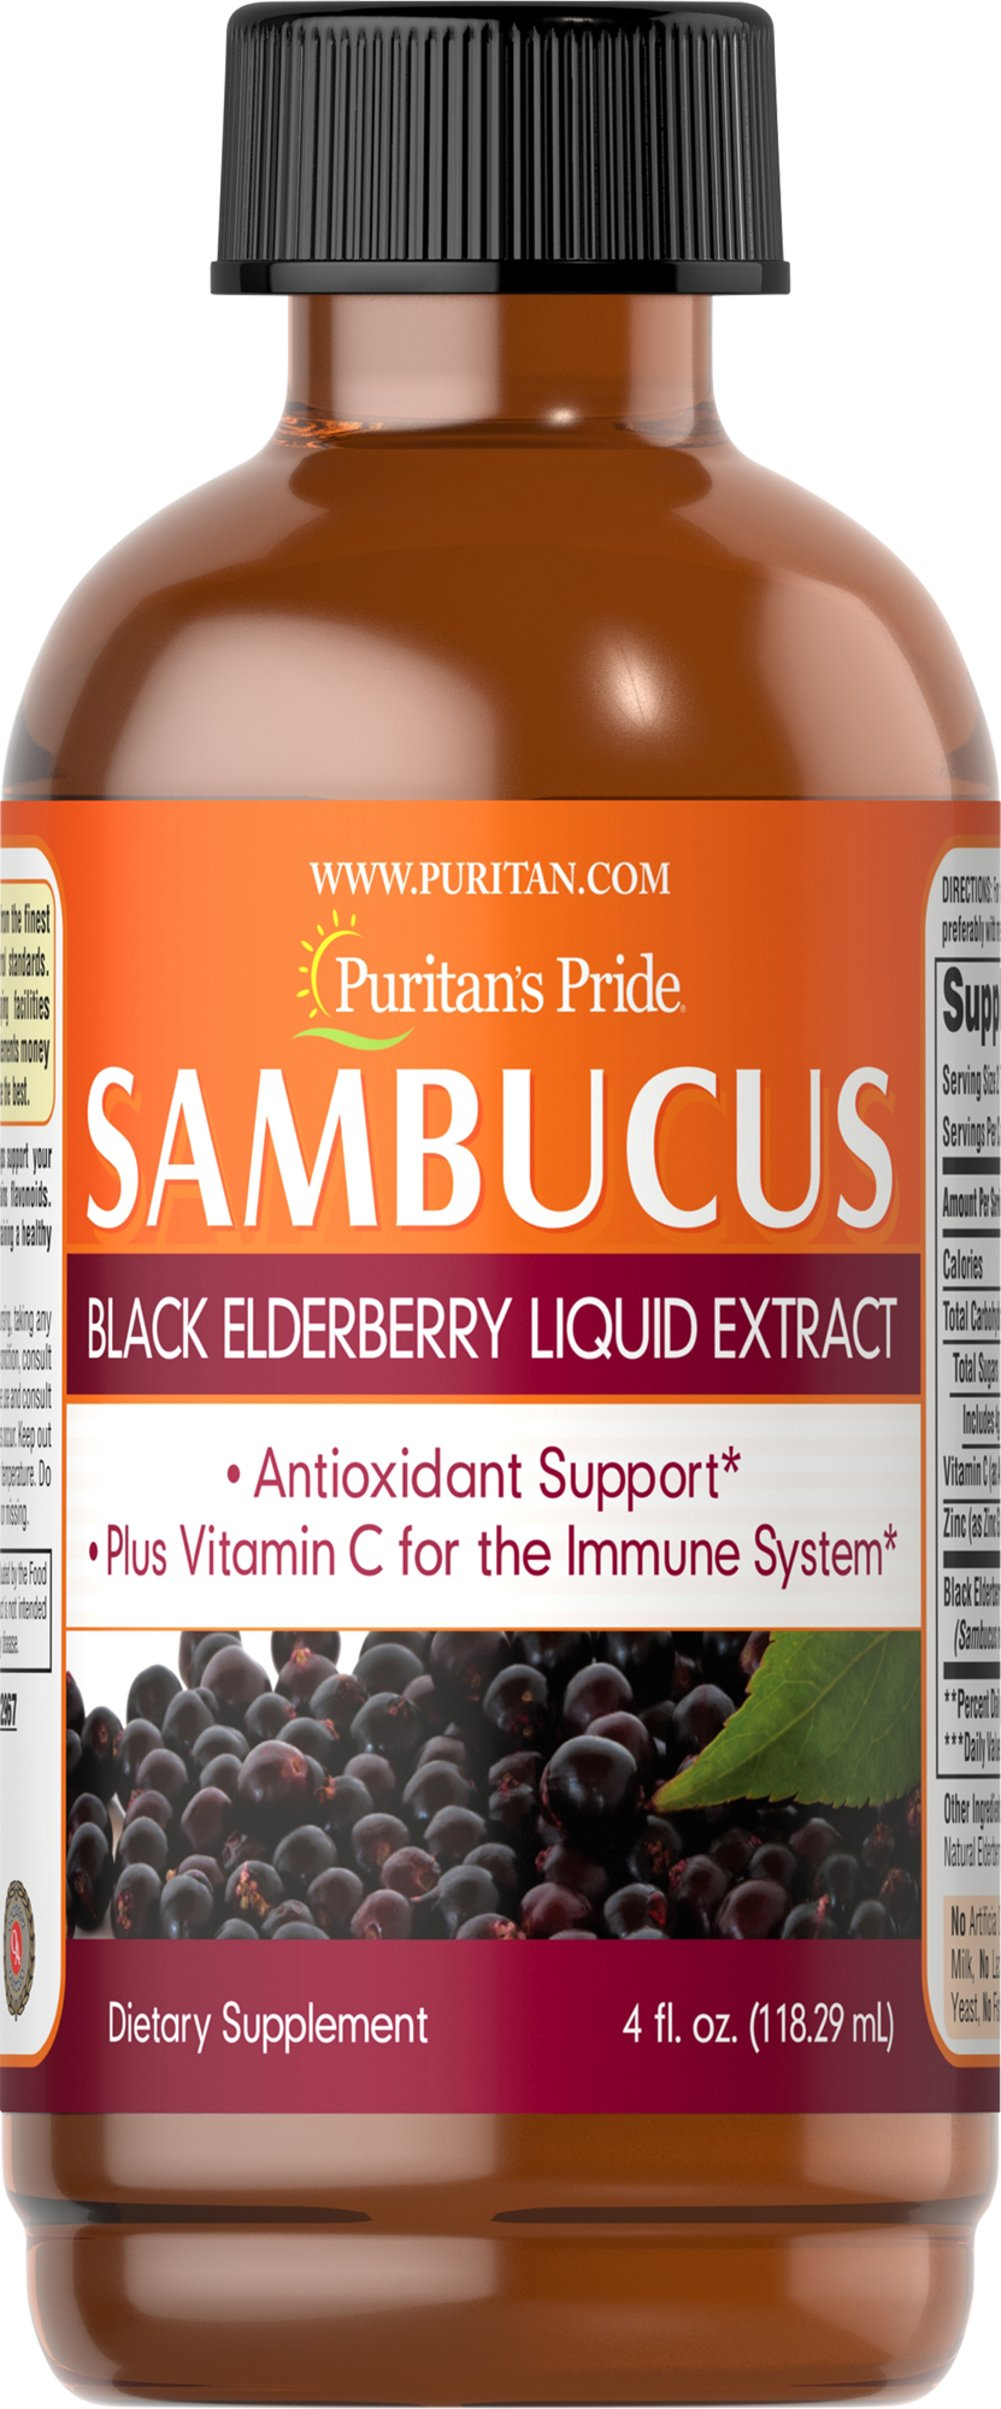 Sambucus Black Elderberry Liquid Extract <p>Antioxidant Support**</p><p>Plus vitamin C for the Immune System**</p><p>Taken every day, Sambucus helps support your overall health and wellness.**  Elderberry contains flavonoids for antioxidant support.**  Vitamin C and Zinc play an important role in maintaining a healthy immune system.**</p> 4 oz Liquid  $15.39